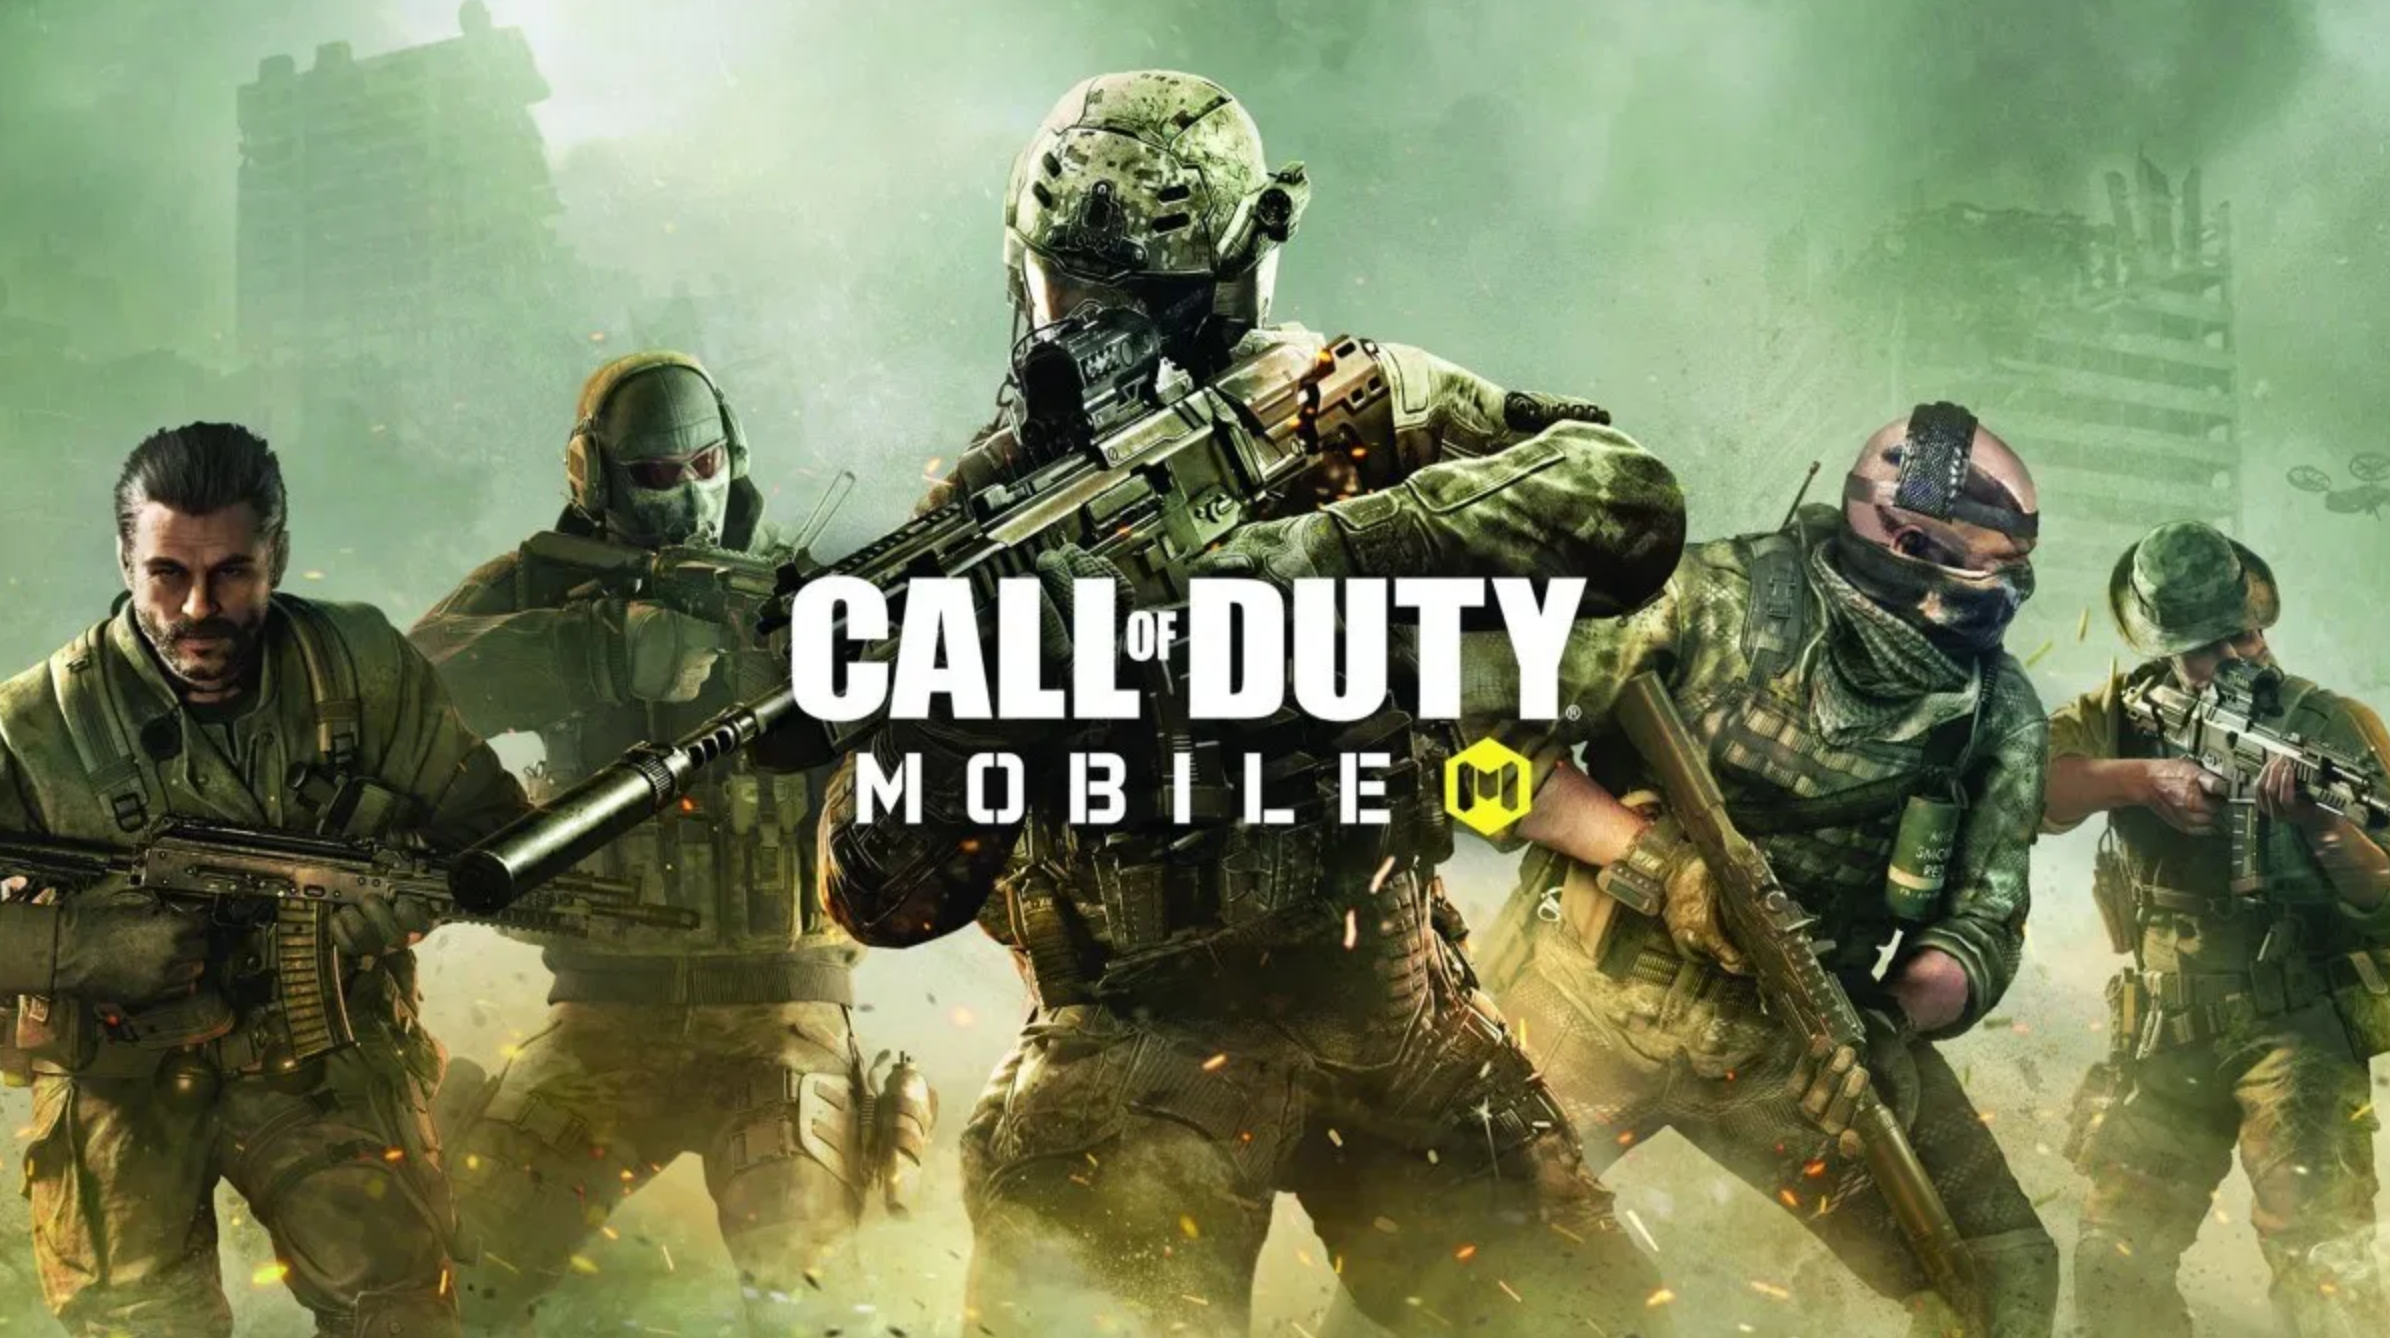 The best Echo shotgun loadout for Call of Duty: Mobile